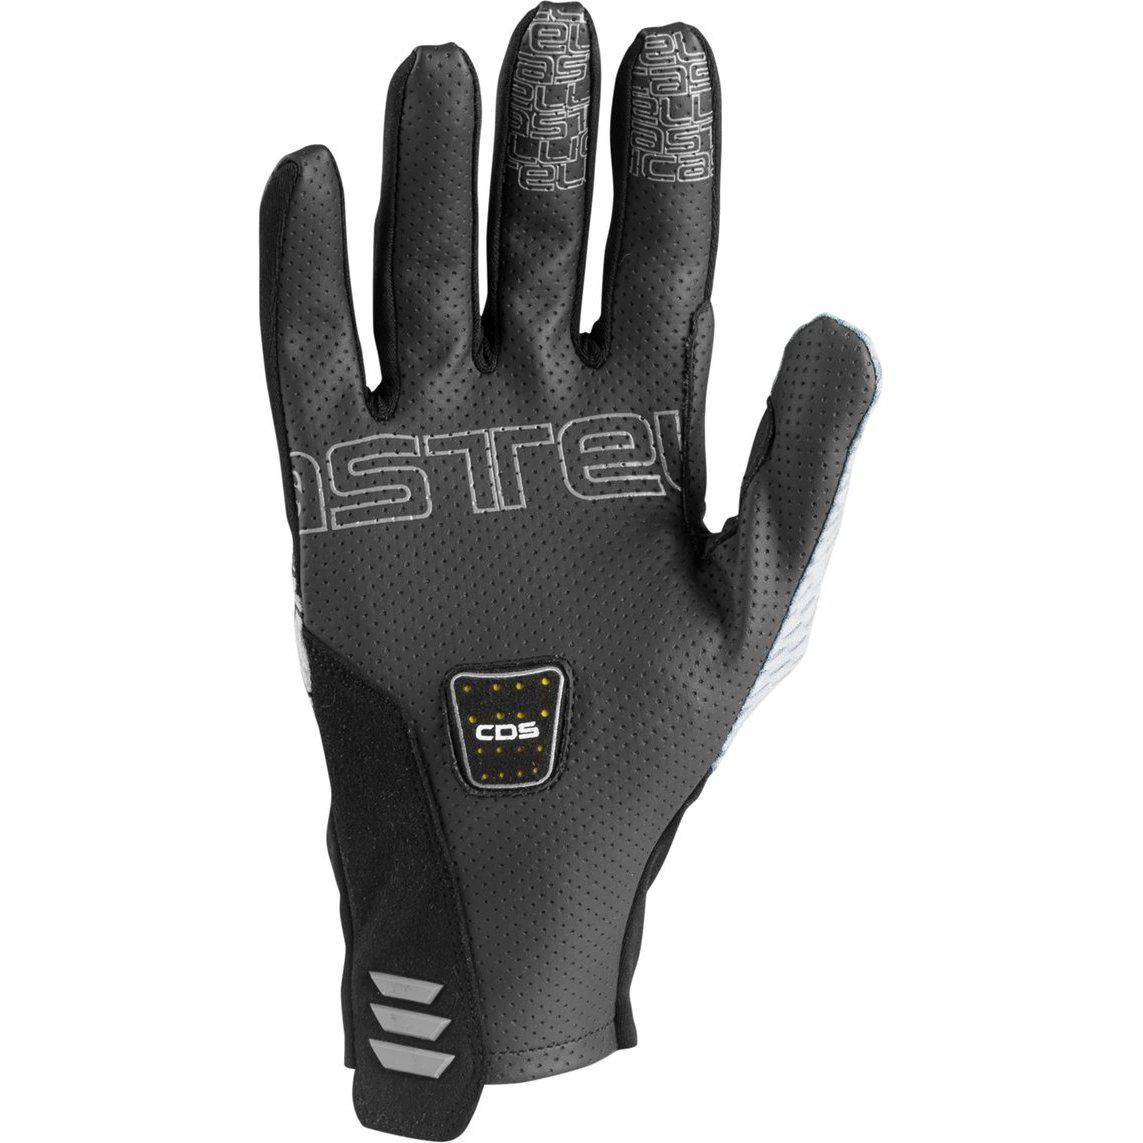 Castelli-Castelli Unlimited Long Finger Gloves-Vortex Gray-XS-CS200348601-saddleback-elite-performance-cycling